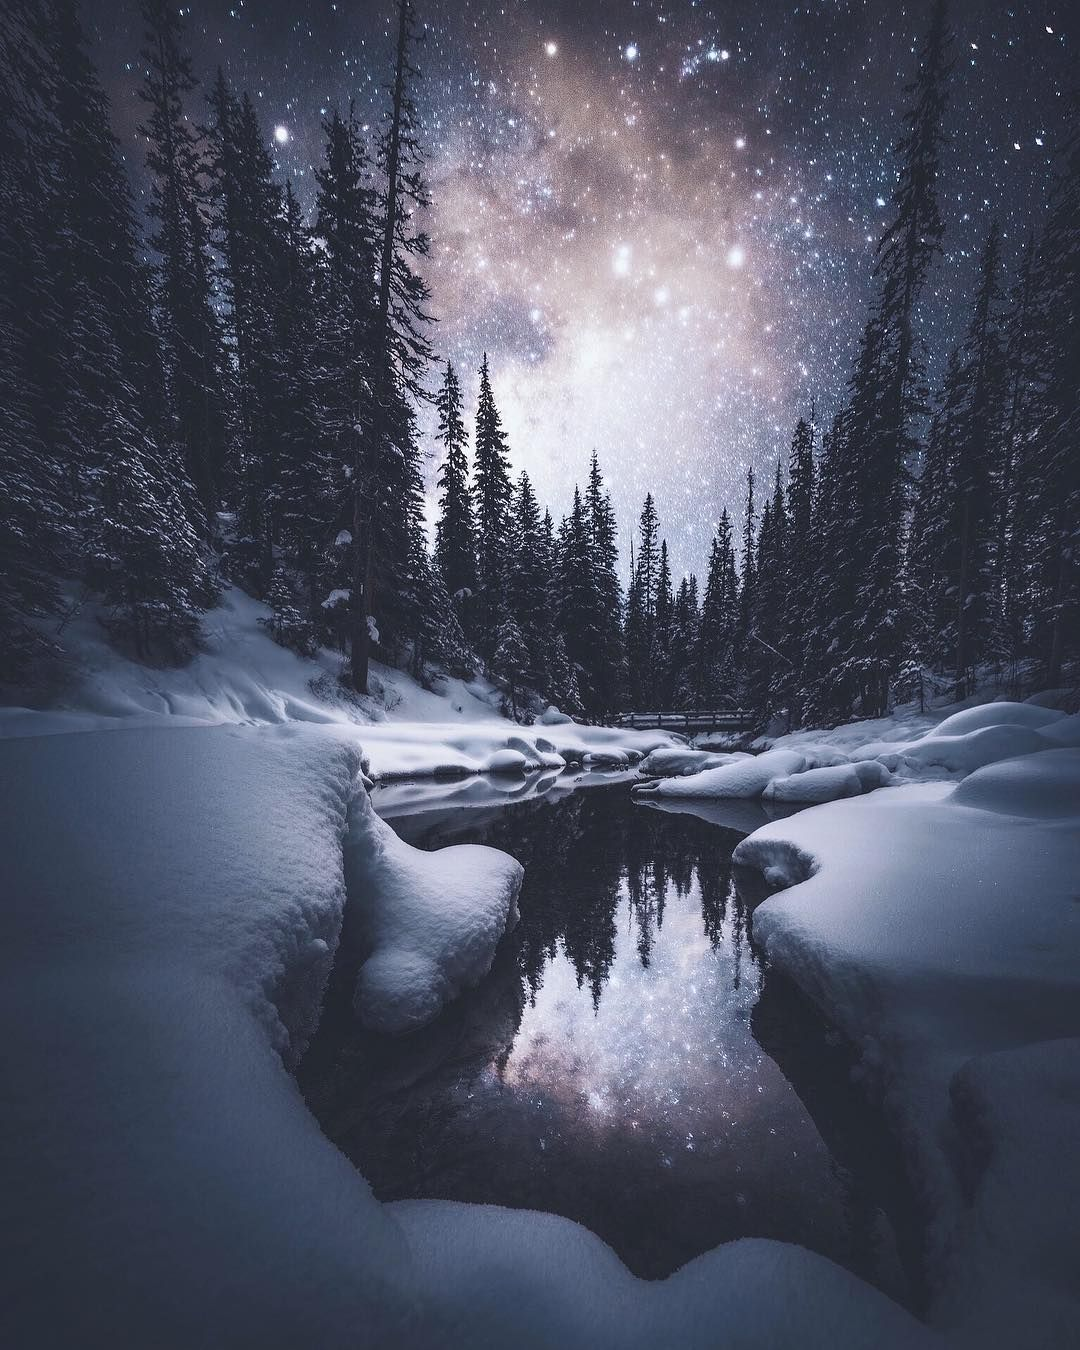 Landscape Photography 32 Fantastic Photos: Dreamlike And Breathtaking Landscape Photography By Corey